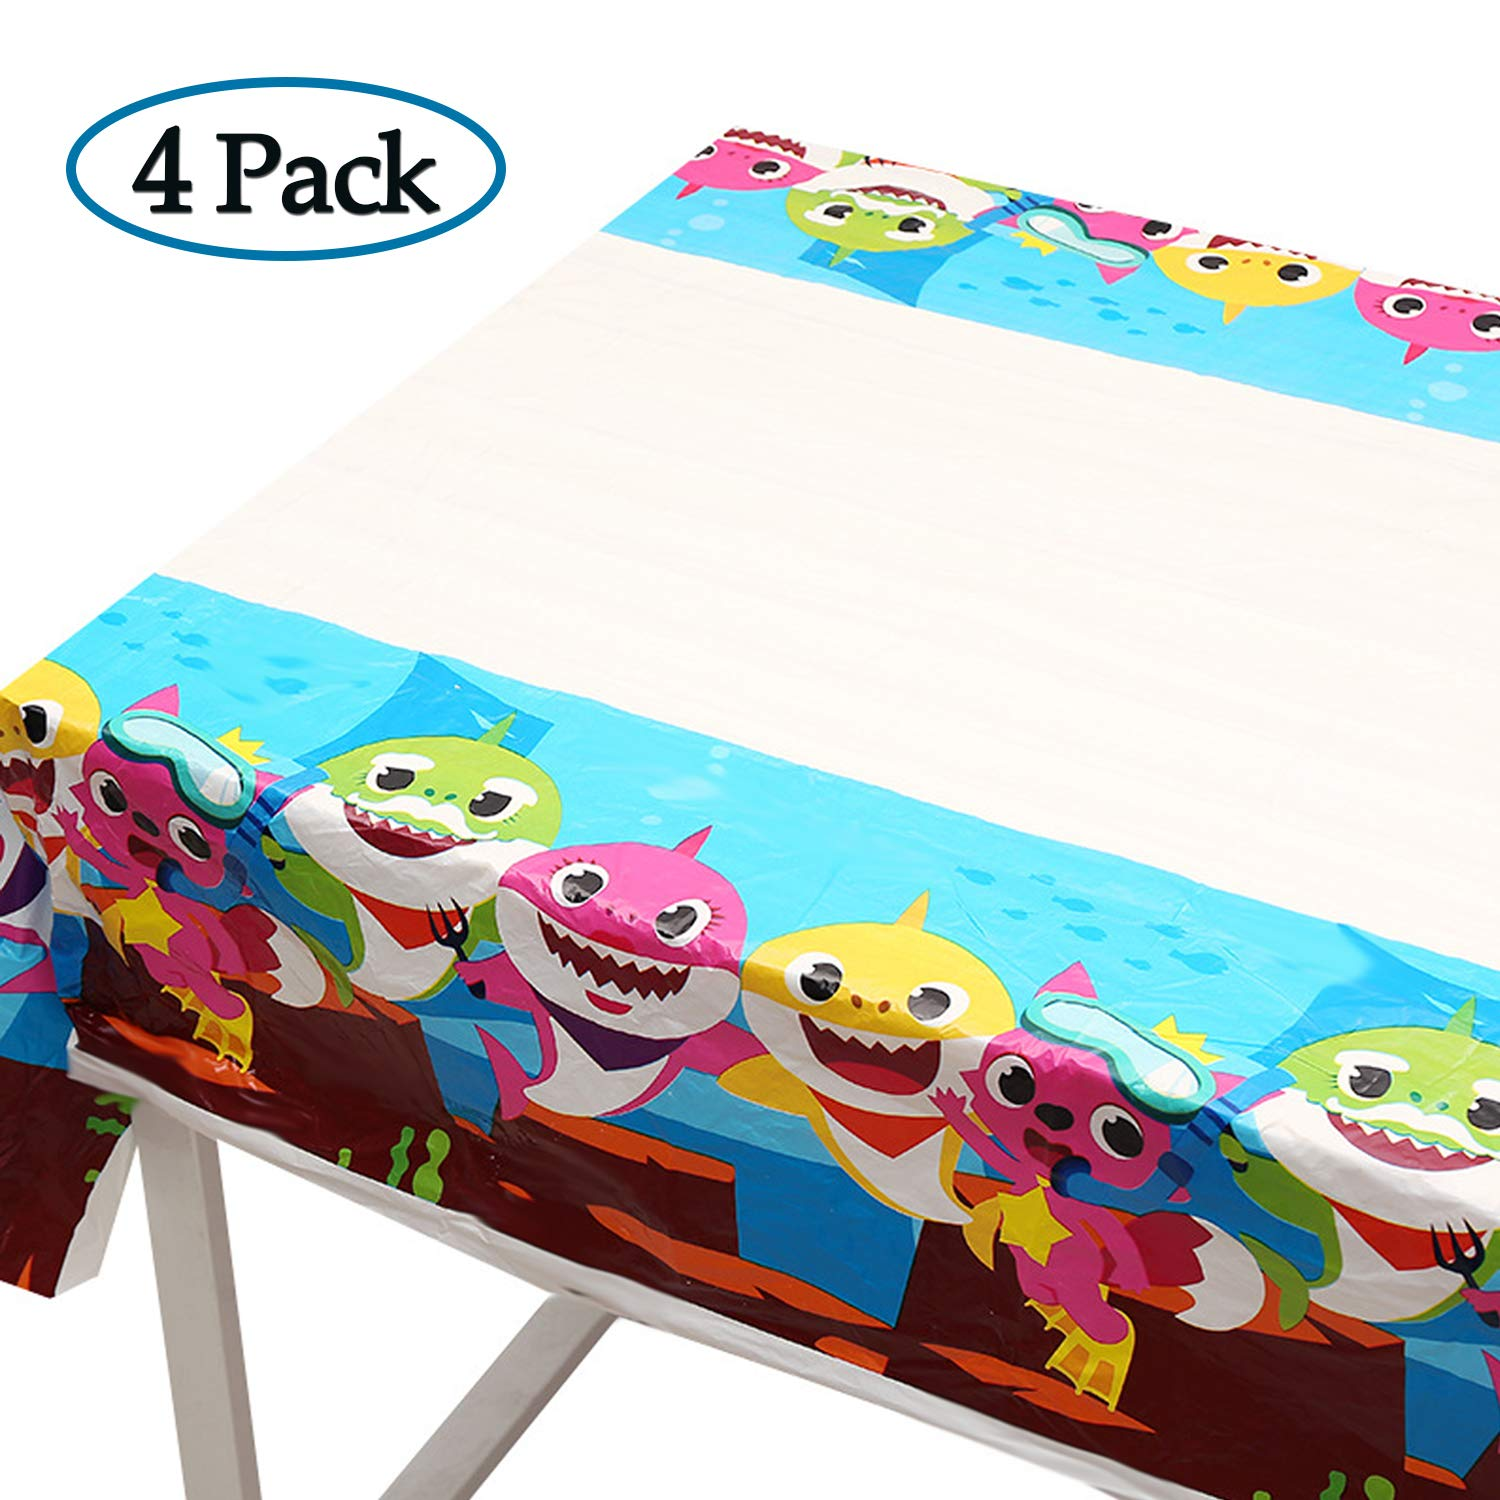 4 Pack Baby Shark Table Cloth, 70 x 42 Inch Table Covers for Baby Shower Birthday Party Decoration Supplies by BAODAN